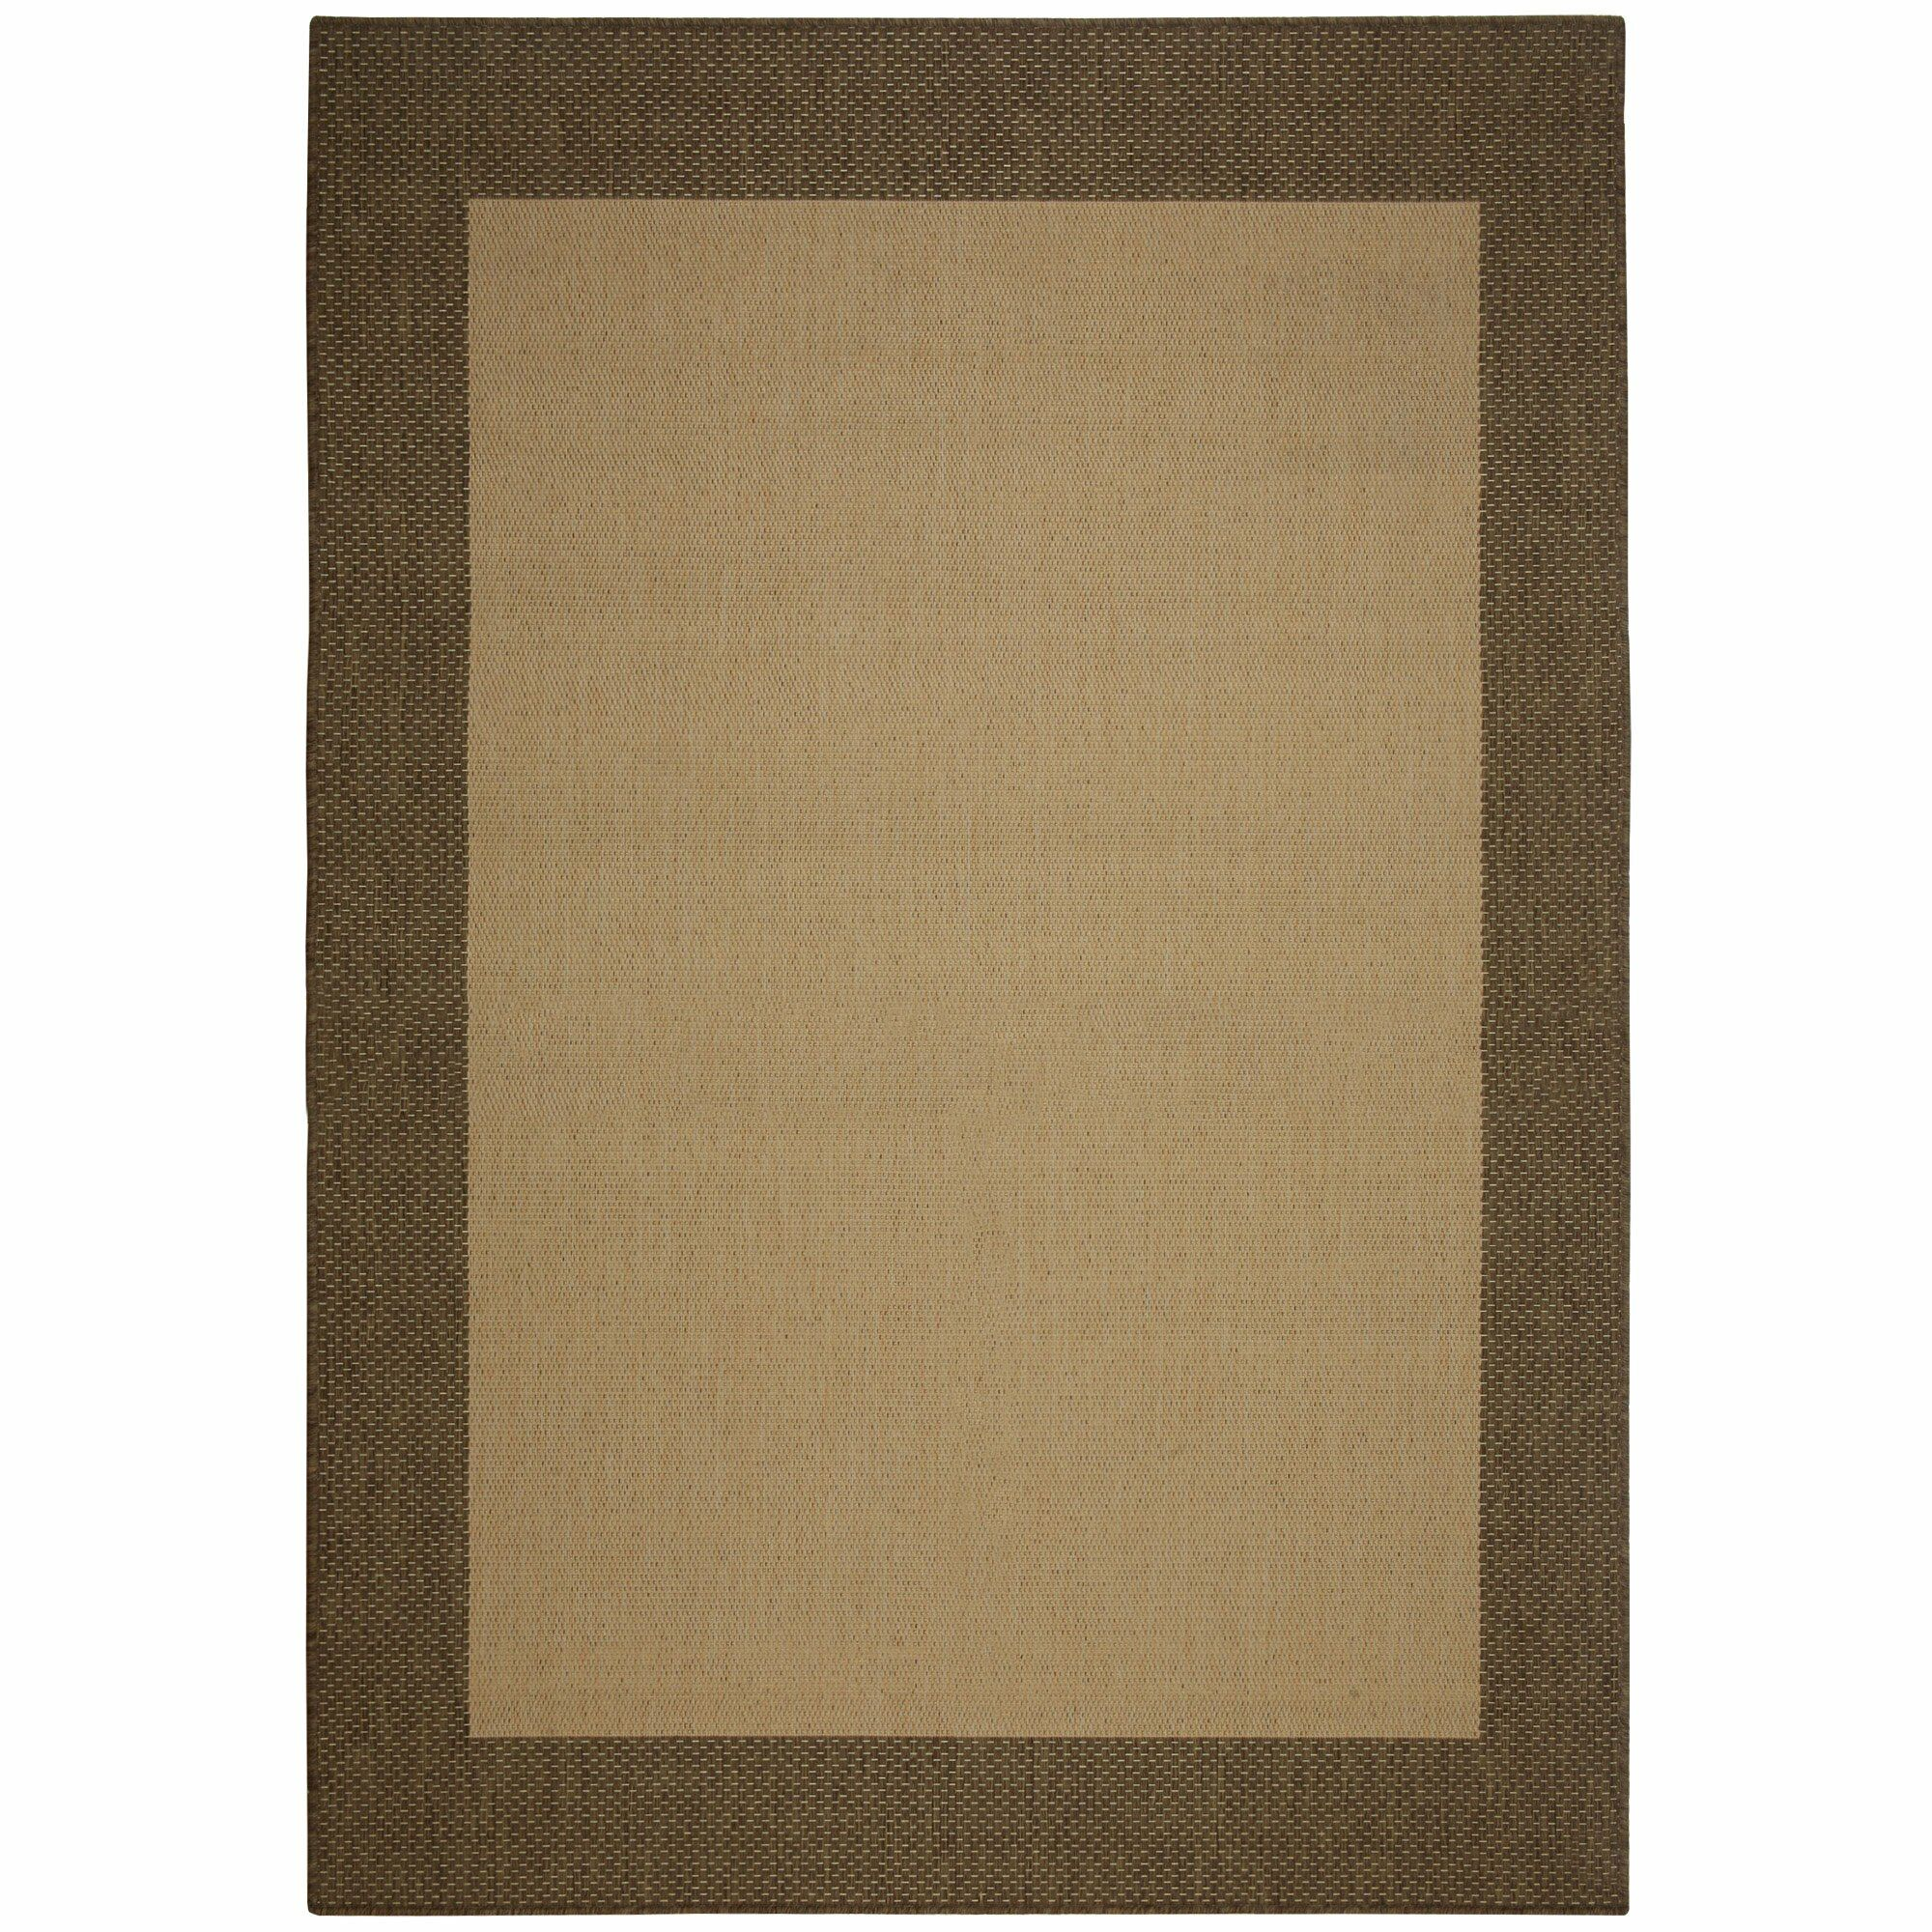 Portofino Cocoa Solid Indoor/Outdoor Area Rug Rug Size: Rectangle 7' x 10'